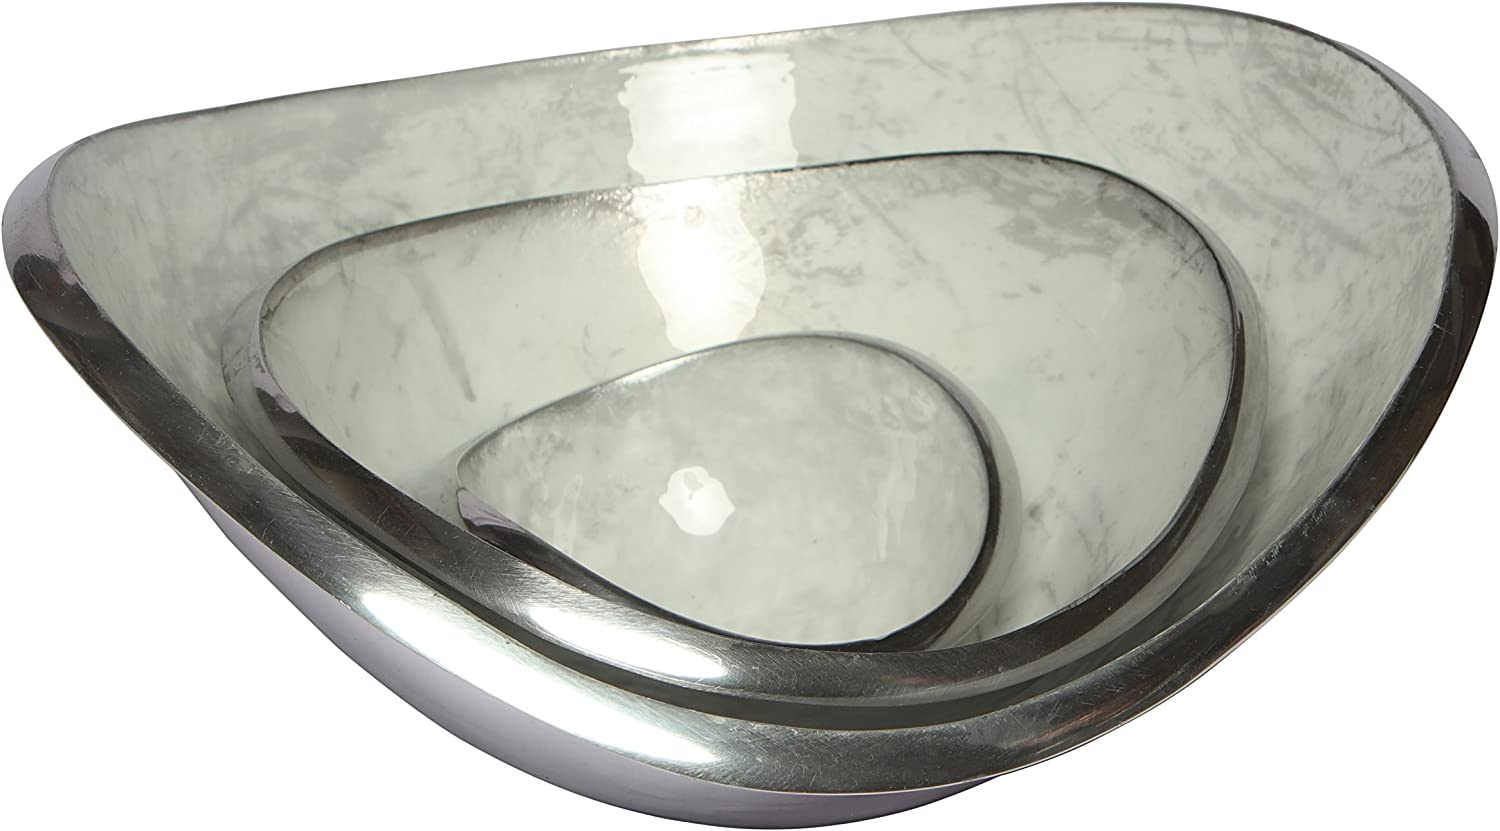 Melange Home Decor Classic Collection Set of 3 Wave Bowls- Sales SALE items from new works 4.25 Max 64% OFF